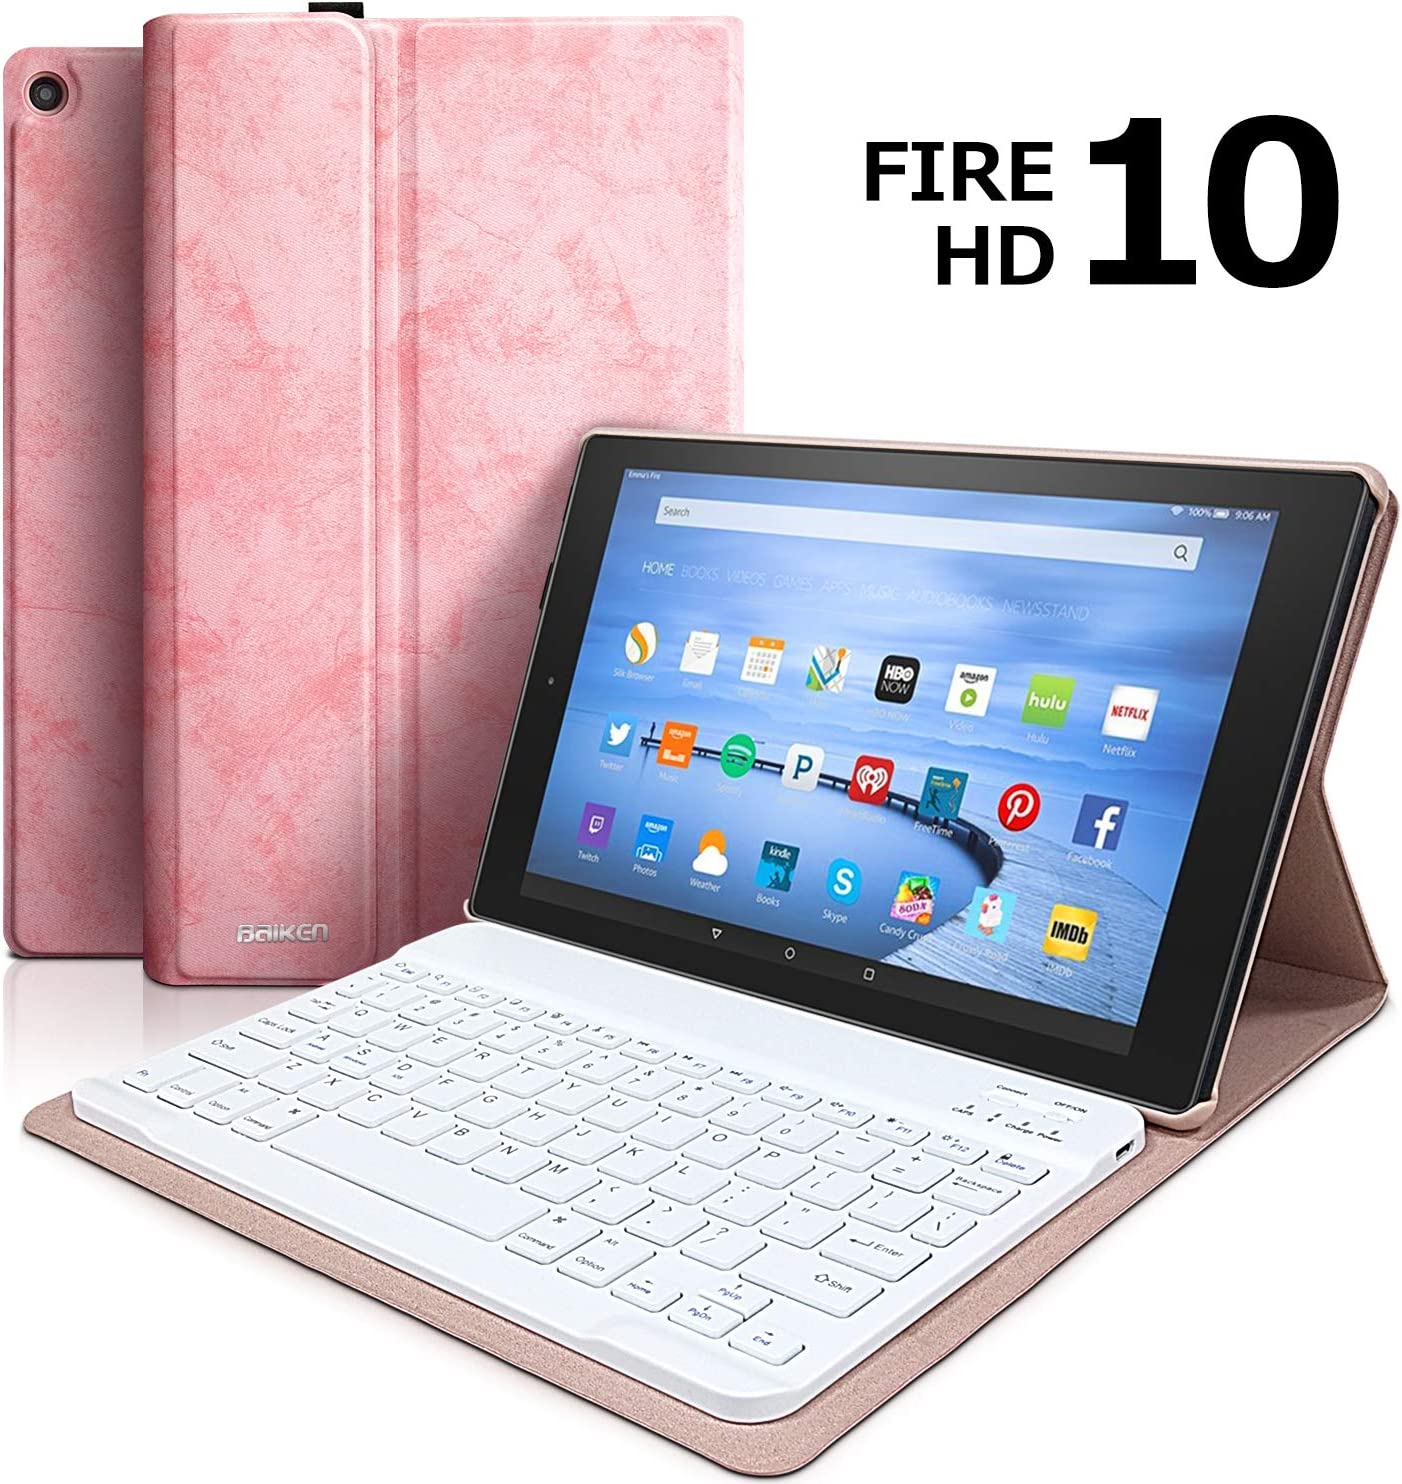 Keyboard Case for Fire HD 10 Tablet (9th Genertion 2019 Release,7th Generation 2017 Release) Detachable Wireless Bluetooth Keyboard Case for All-New Amazon Fire HD 10.1 Inch